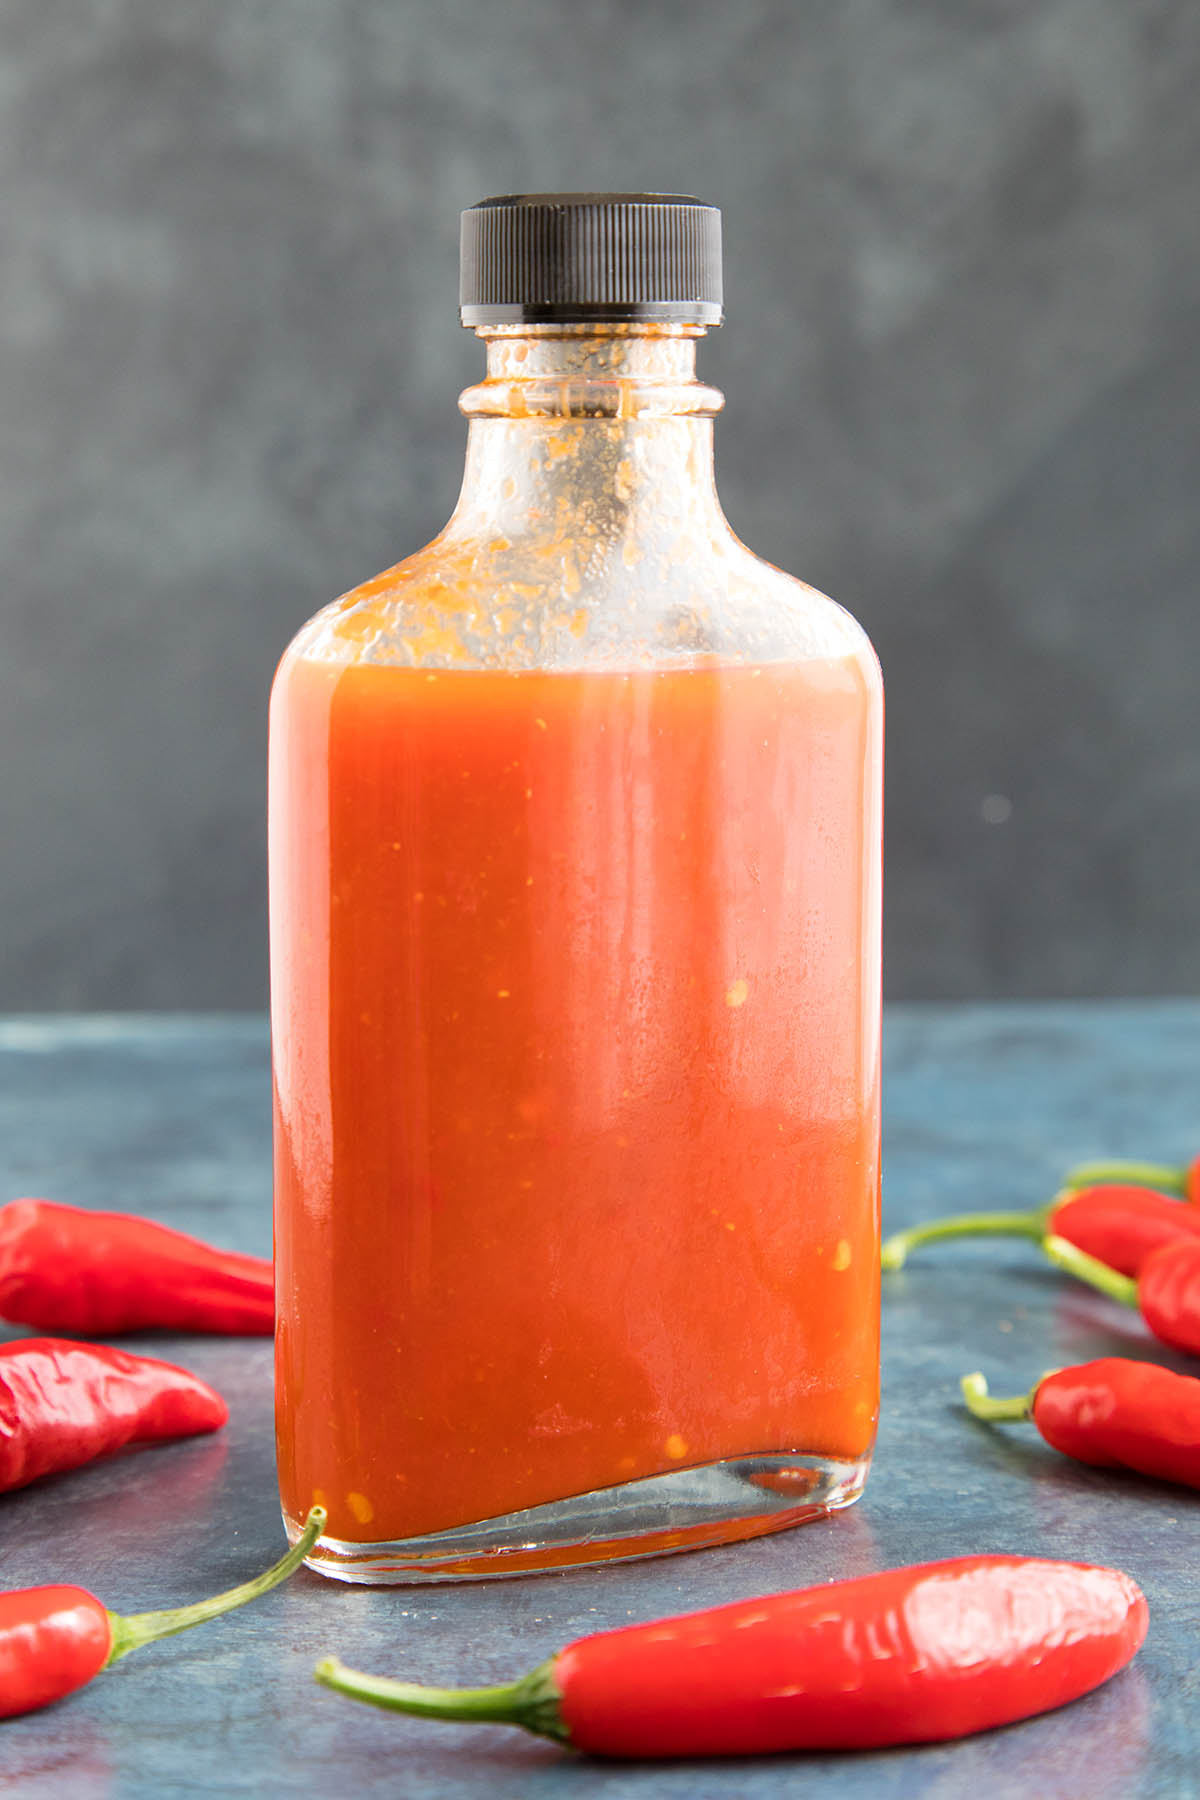 Homemade Sriracha Hot Sauce Recipe